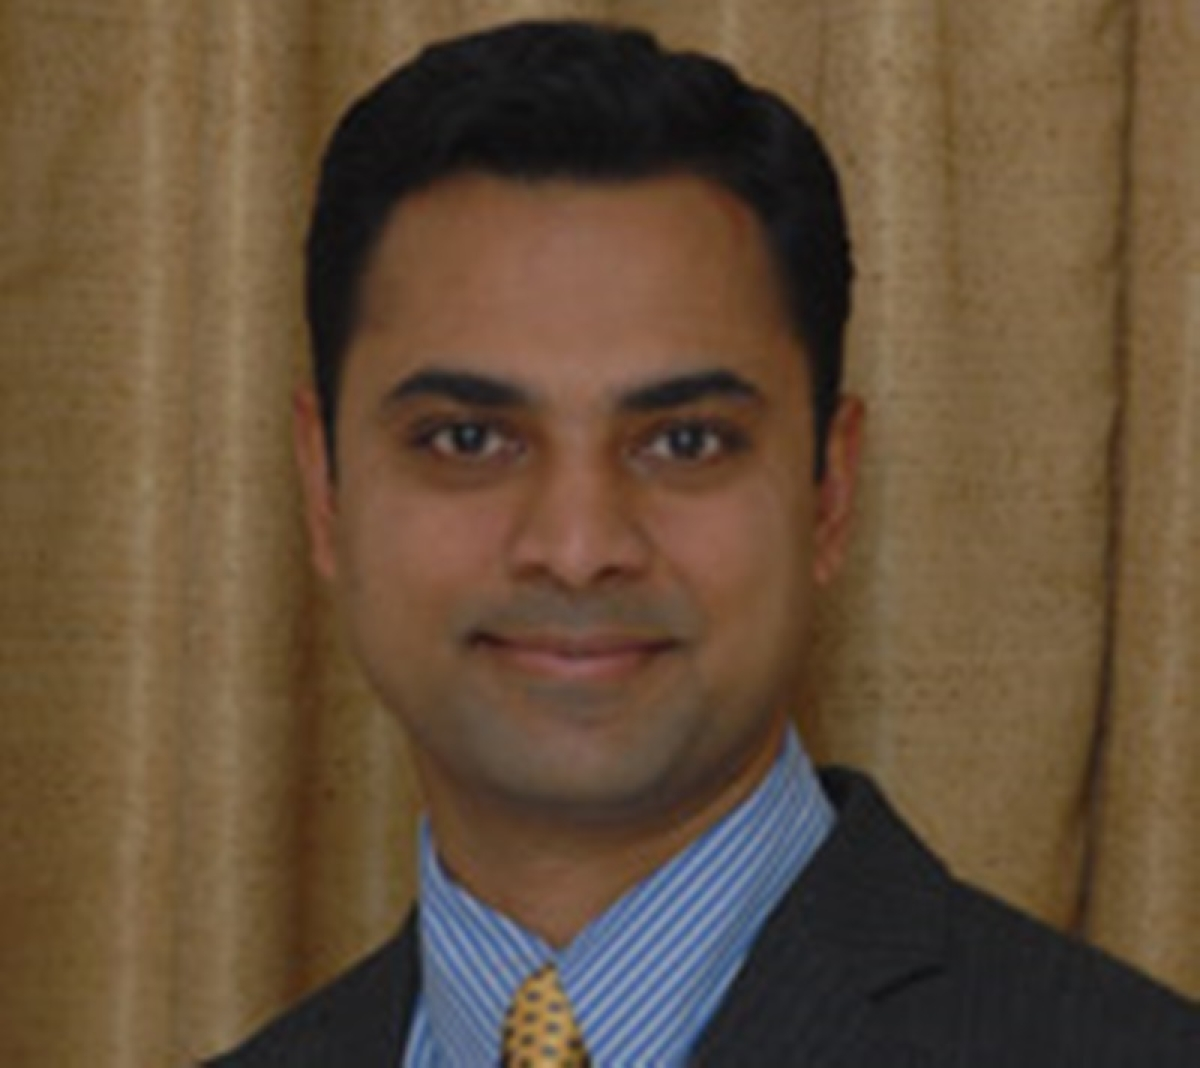 Government appoints Krishnamurthy Subramanian as Chief Economic Adviser for a period of 3 years